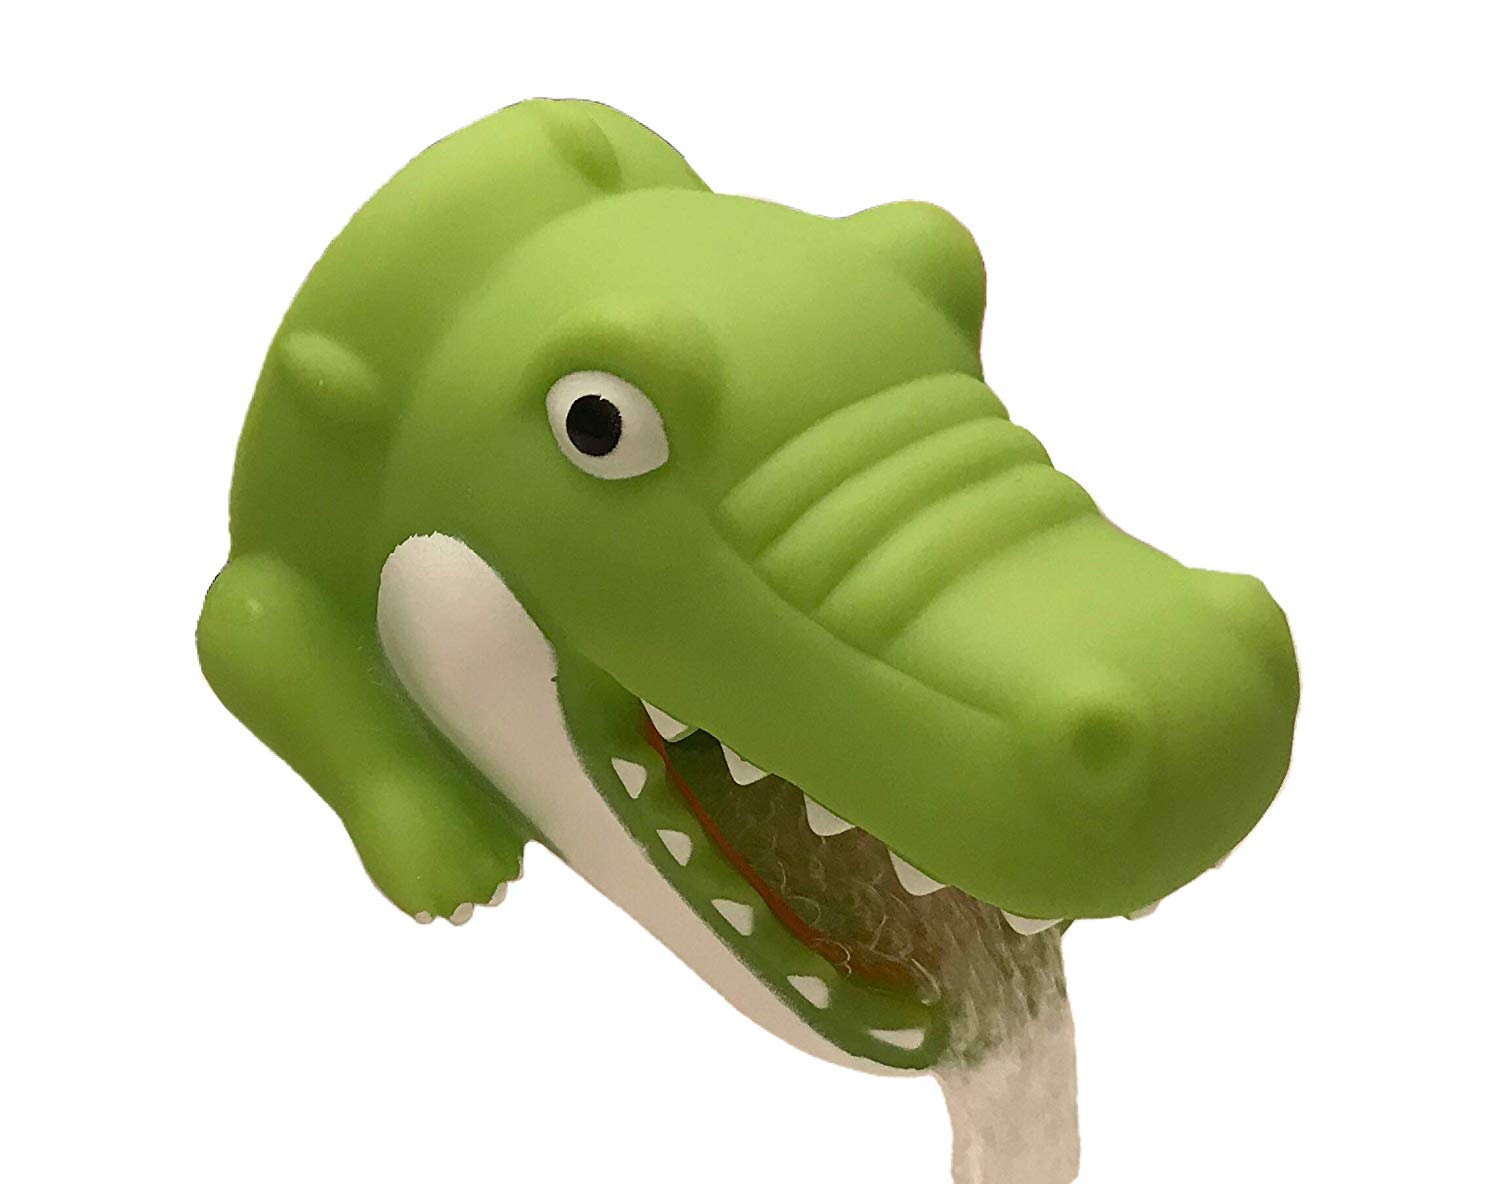 Green Crocodile Odowalker Cartoon Faucet Extender Washbasin Bath Spout Cover Cute Animal Toy Faucet Cover Bath Safety Fun for Babies Toddlers Kids Children